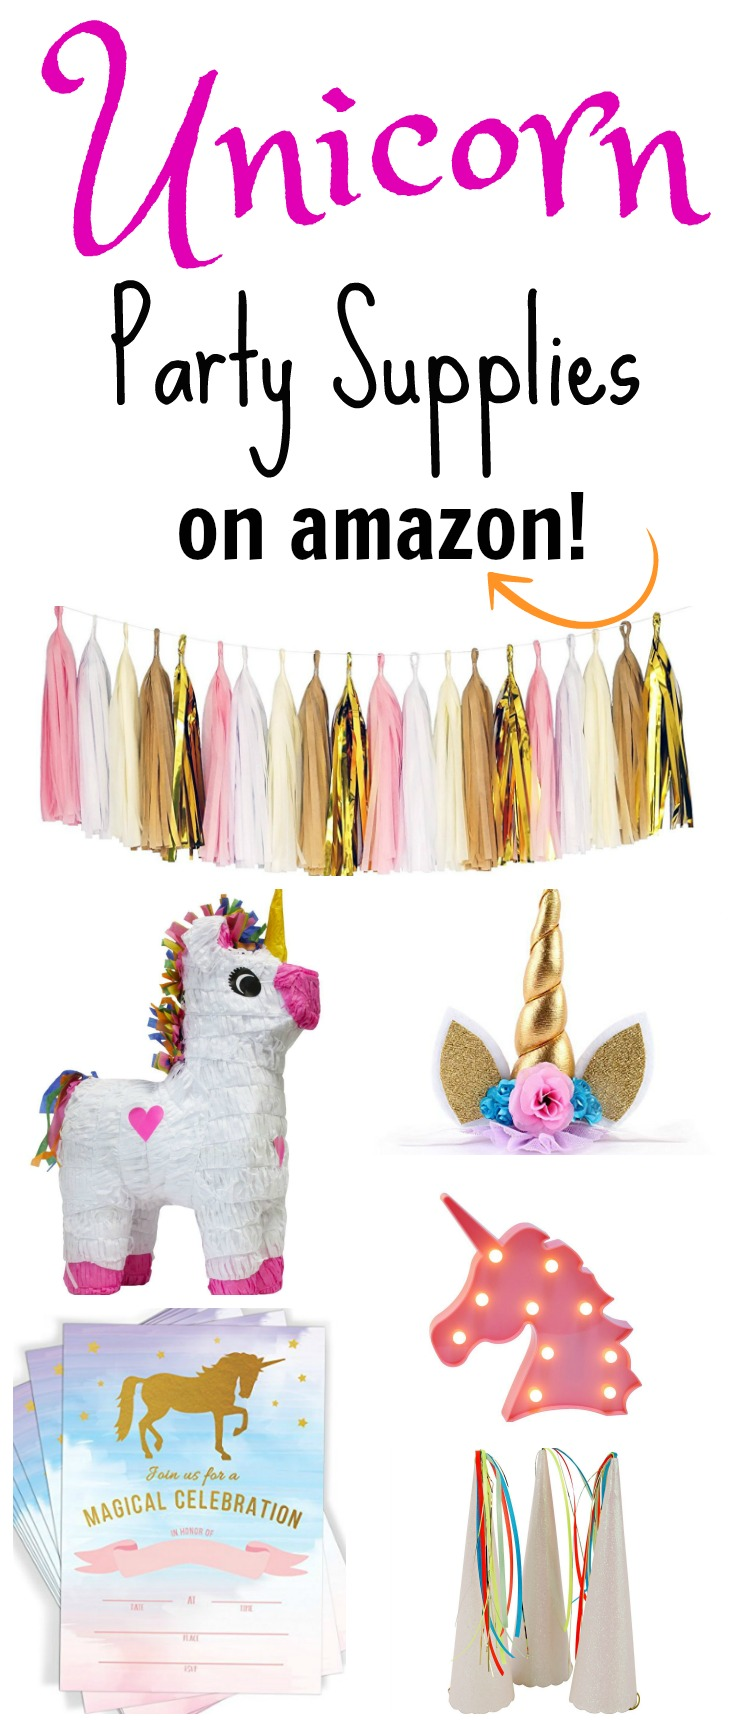 Unicorn Party Supplies on Amazon